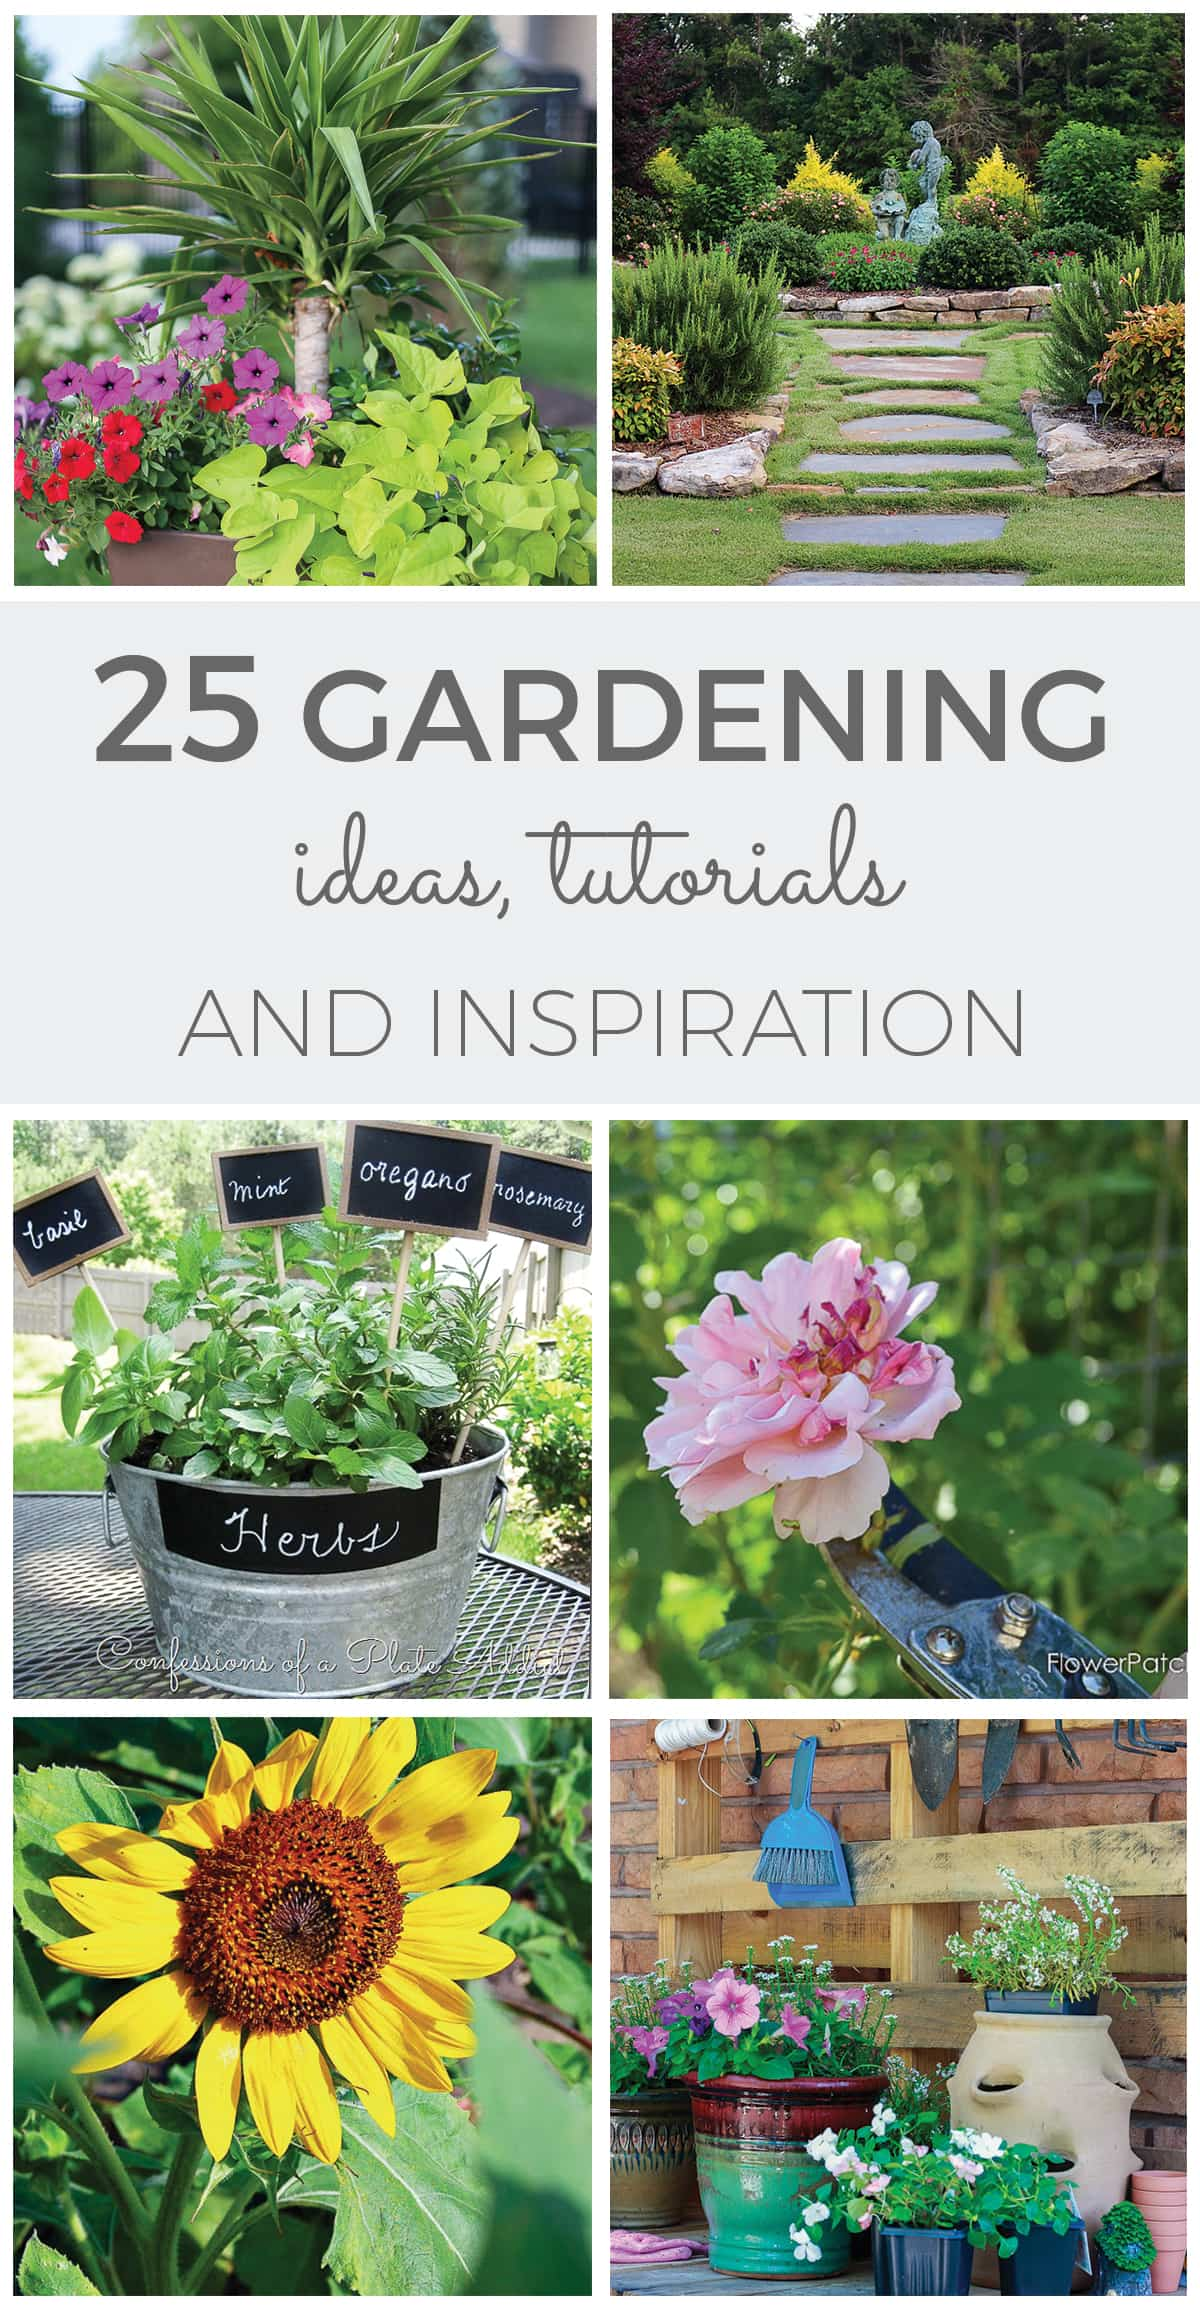 25 gardening ideas tutorials and inspiration - designthusiasm.com